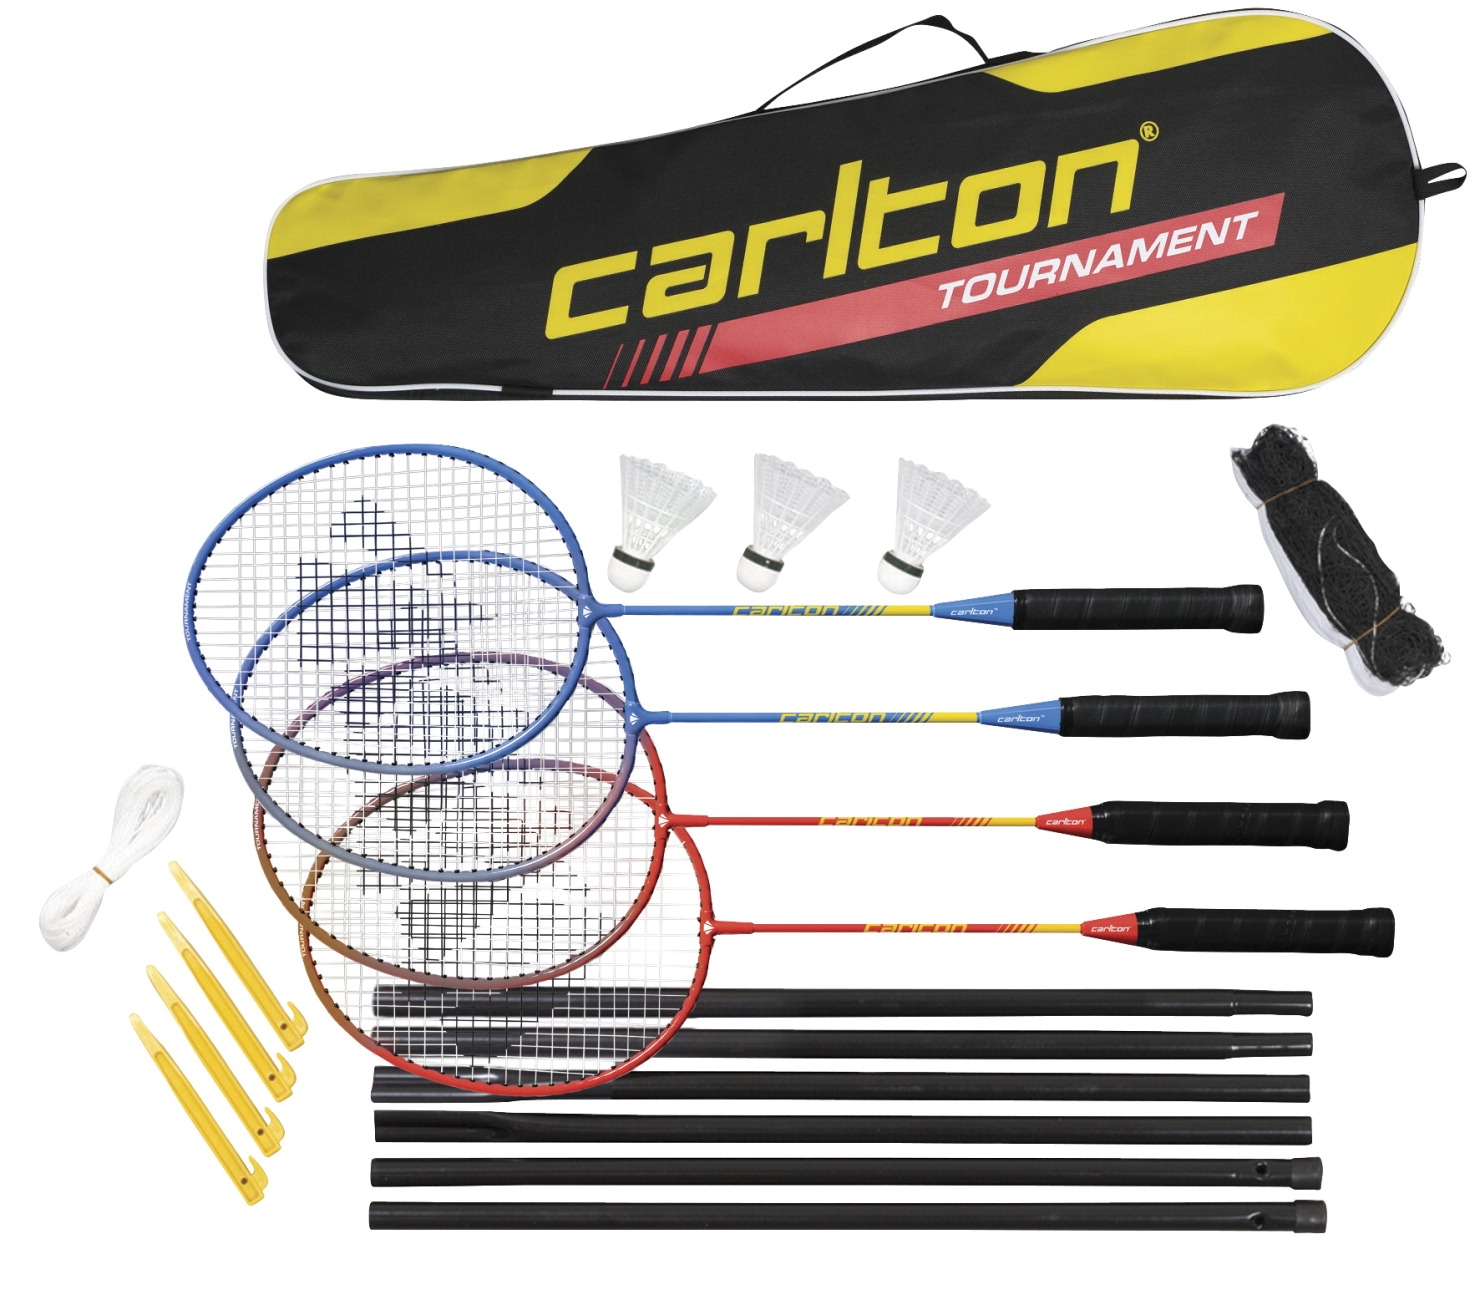 Facilities Tv & Video Blu Ray Players - 1393121 - Carlton Badminton Championship 4-player Set 1393121